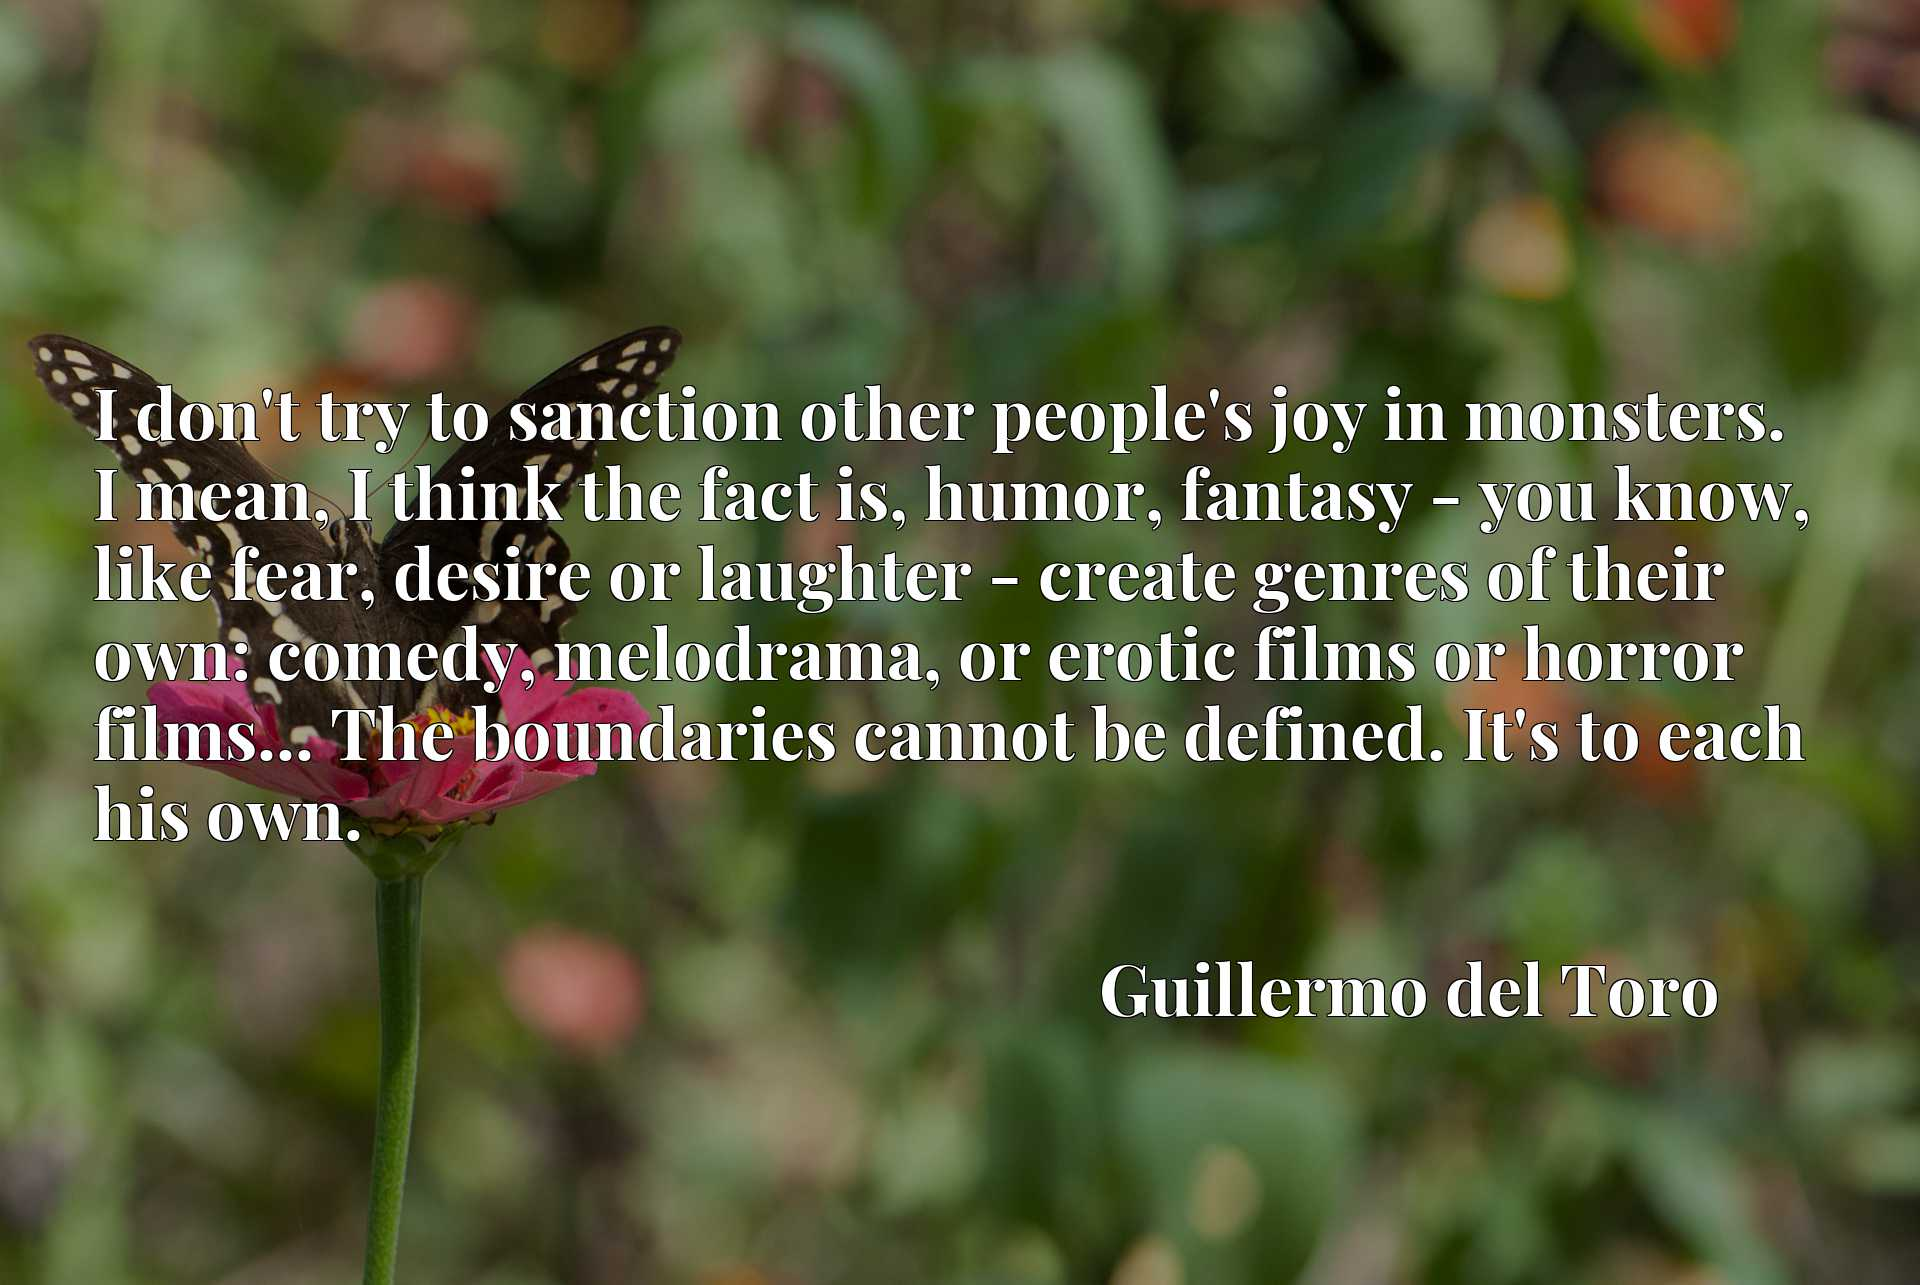 I don't try to sanction other people's joy in monsters. I mean, I think the fact is, humor, fantasy - you know, like fear, desire or laughter - create genres of their own: comedy, melodrama, or erotic films or horror films... The boundaries cannot be defined. It's to each his own.